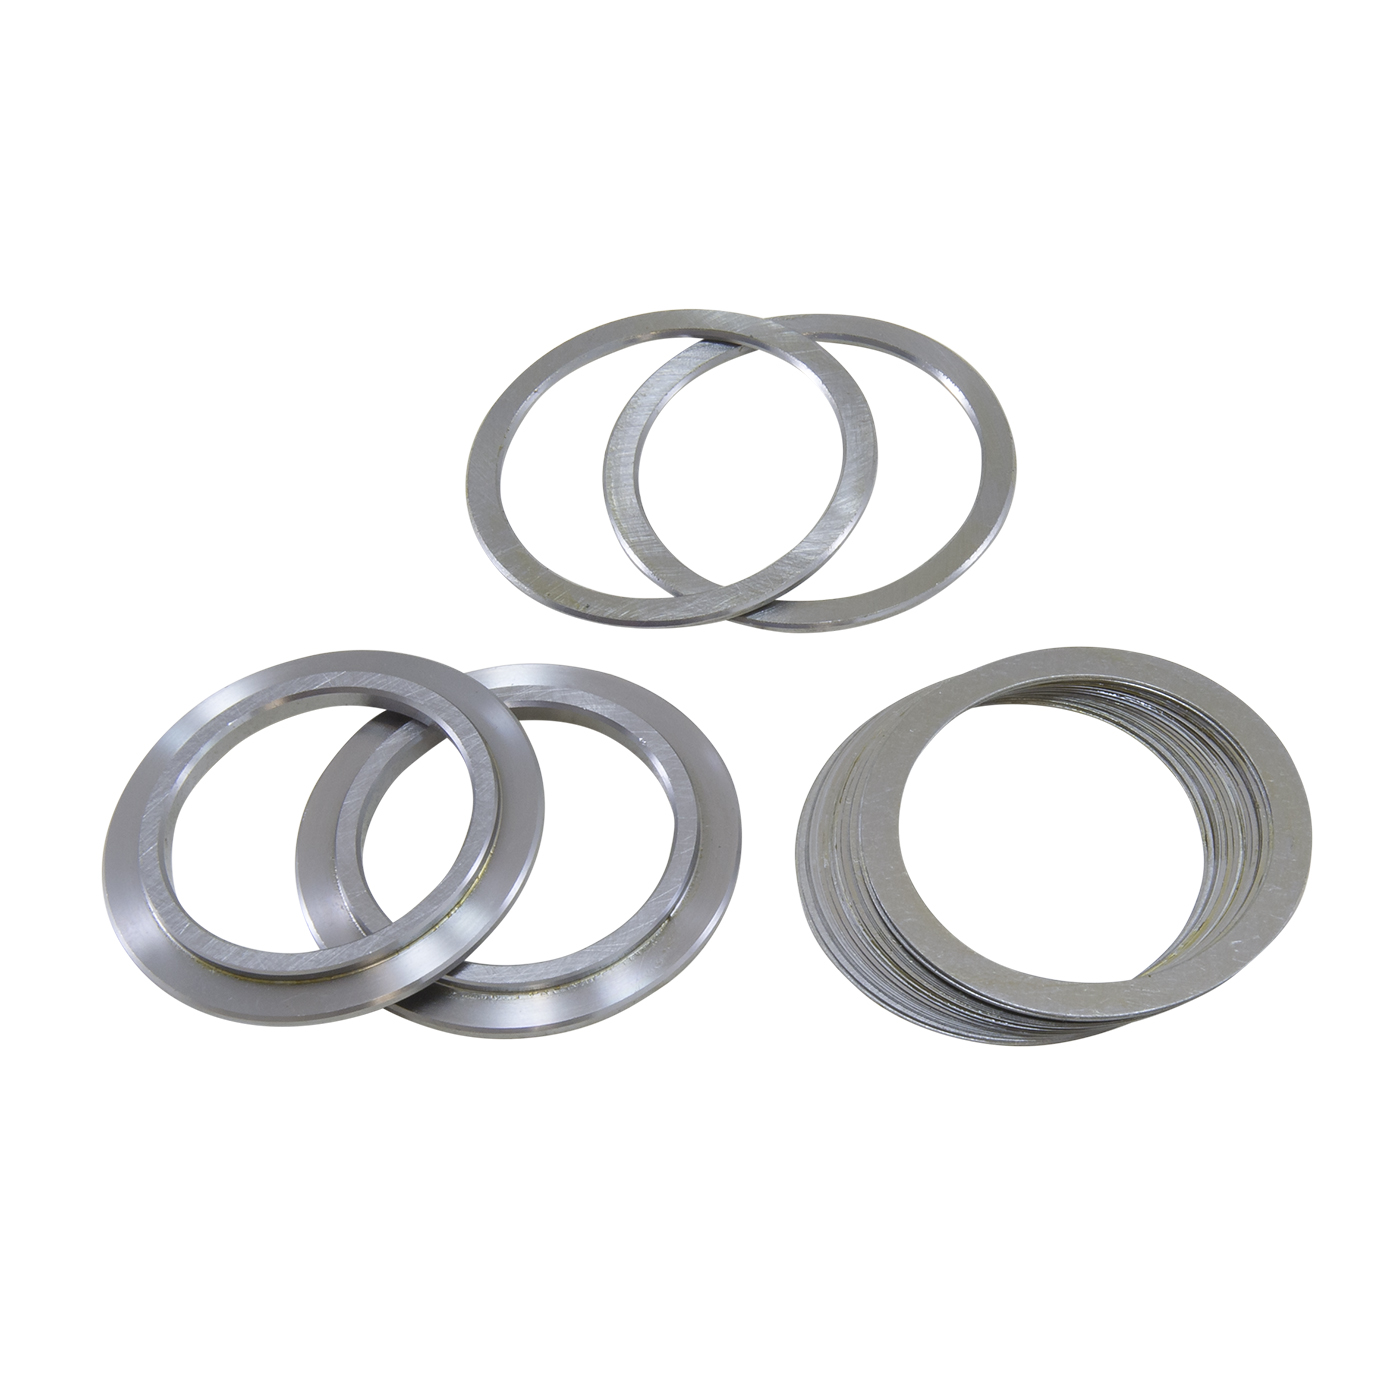 SK M20-3 - Model 20 axle end play shim